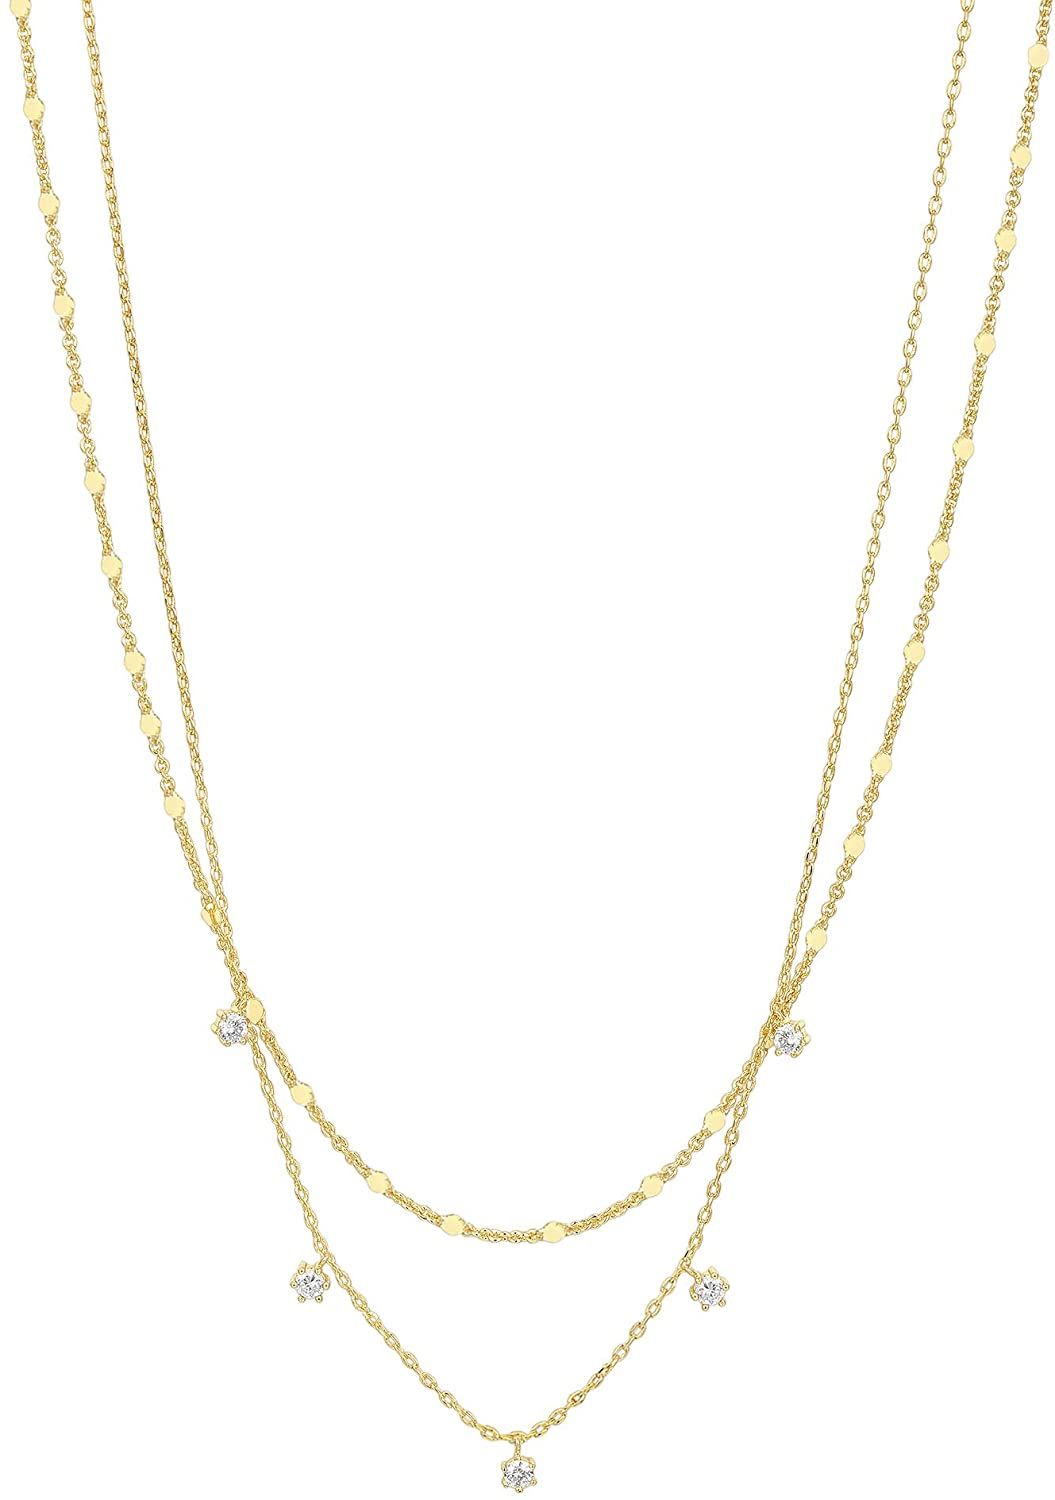 PAVOI 14K Gold Plated Star, Coin, Butterfly, Lightning Cluster Pendant Necklace for Women